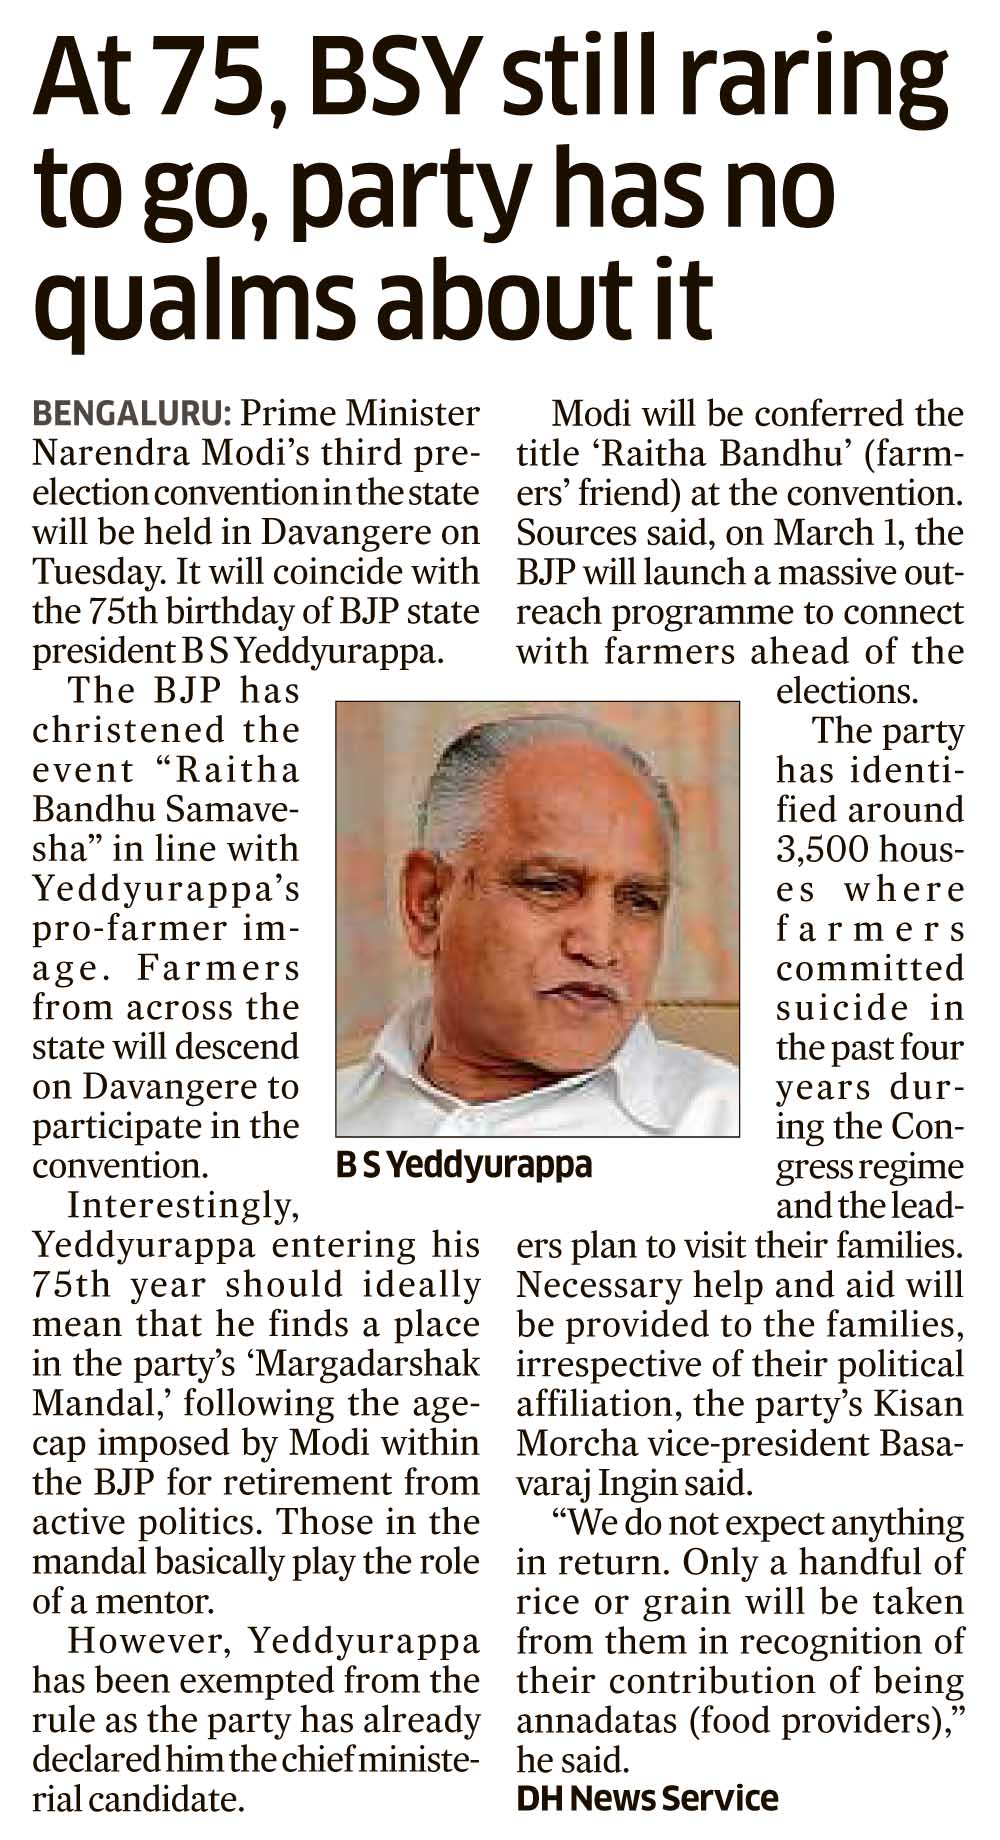 At 75, BSY still raring to go, party has no qualms about it